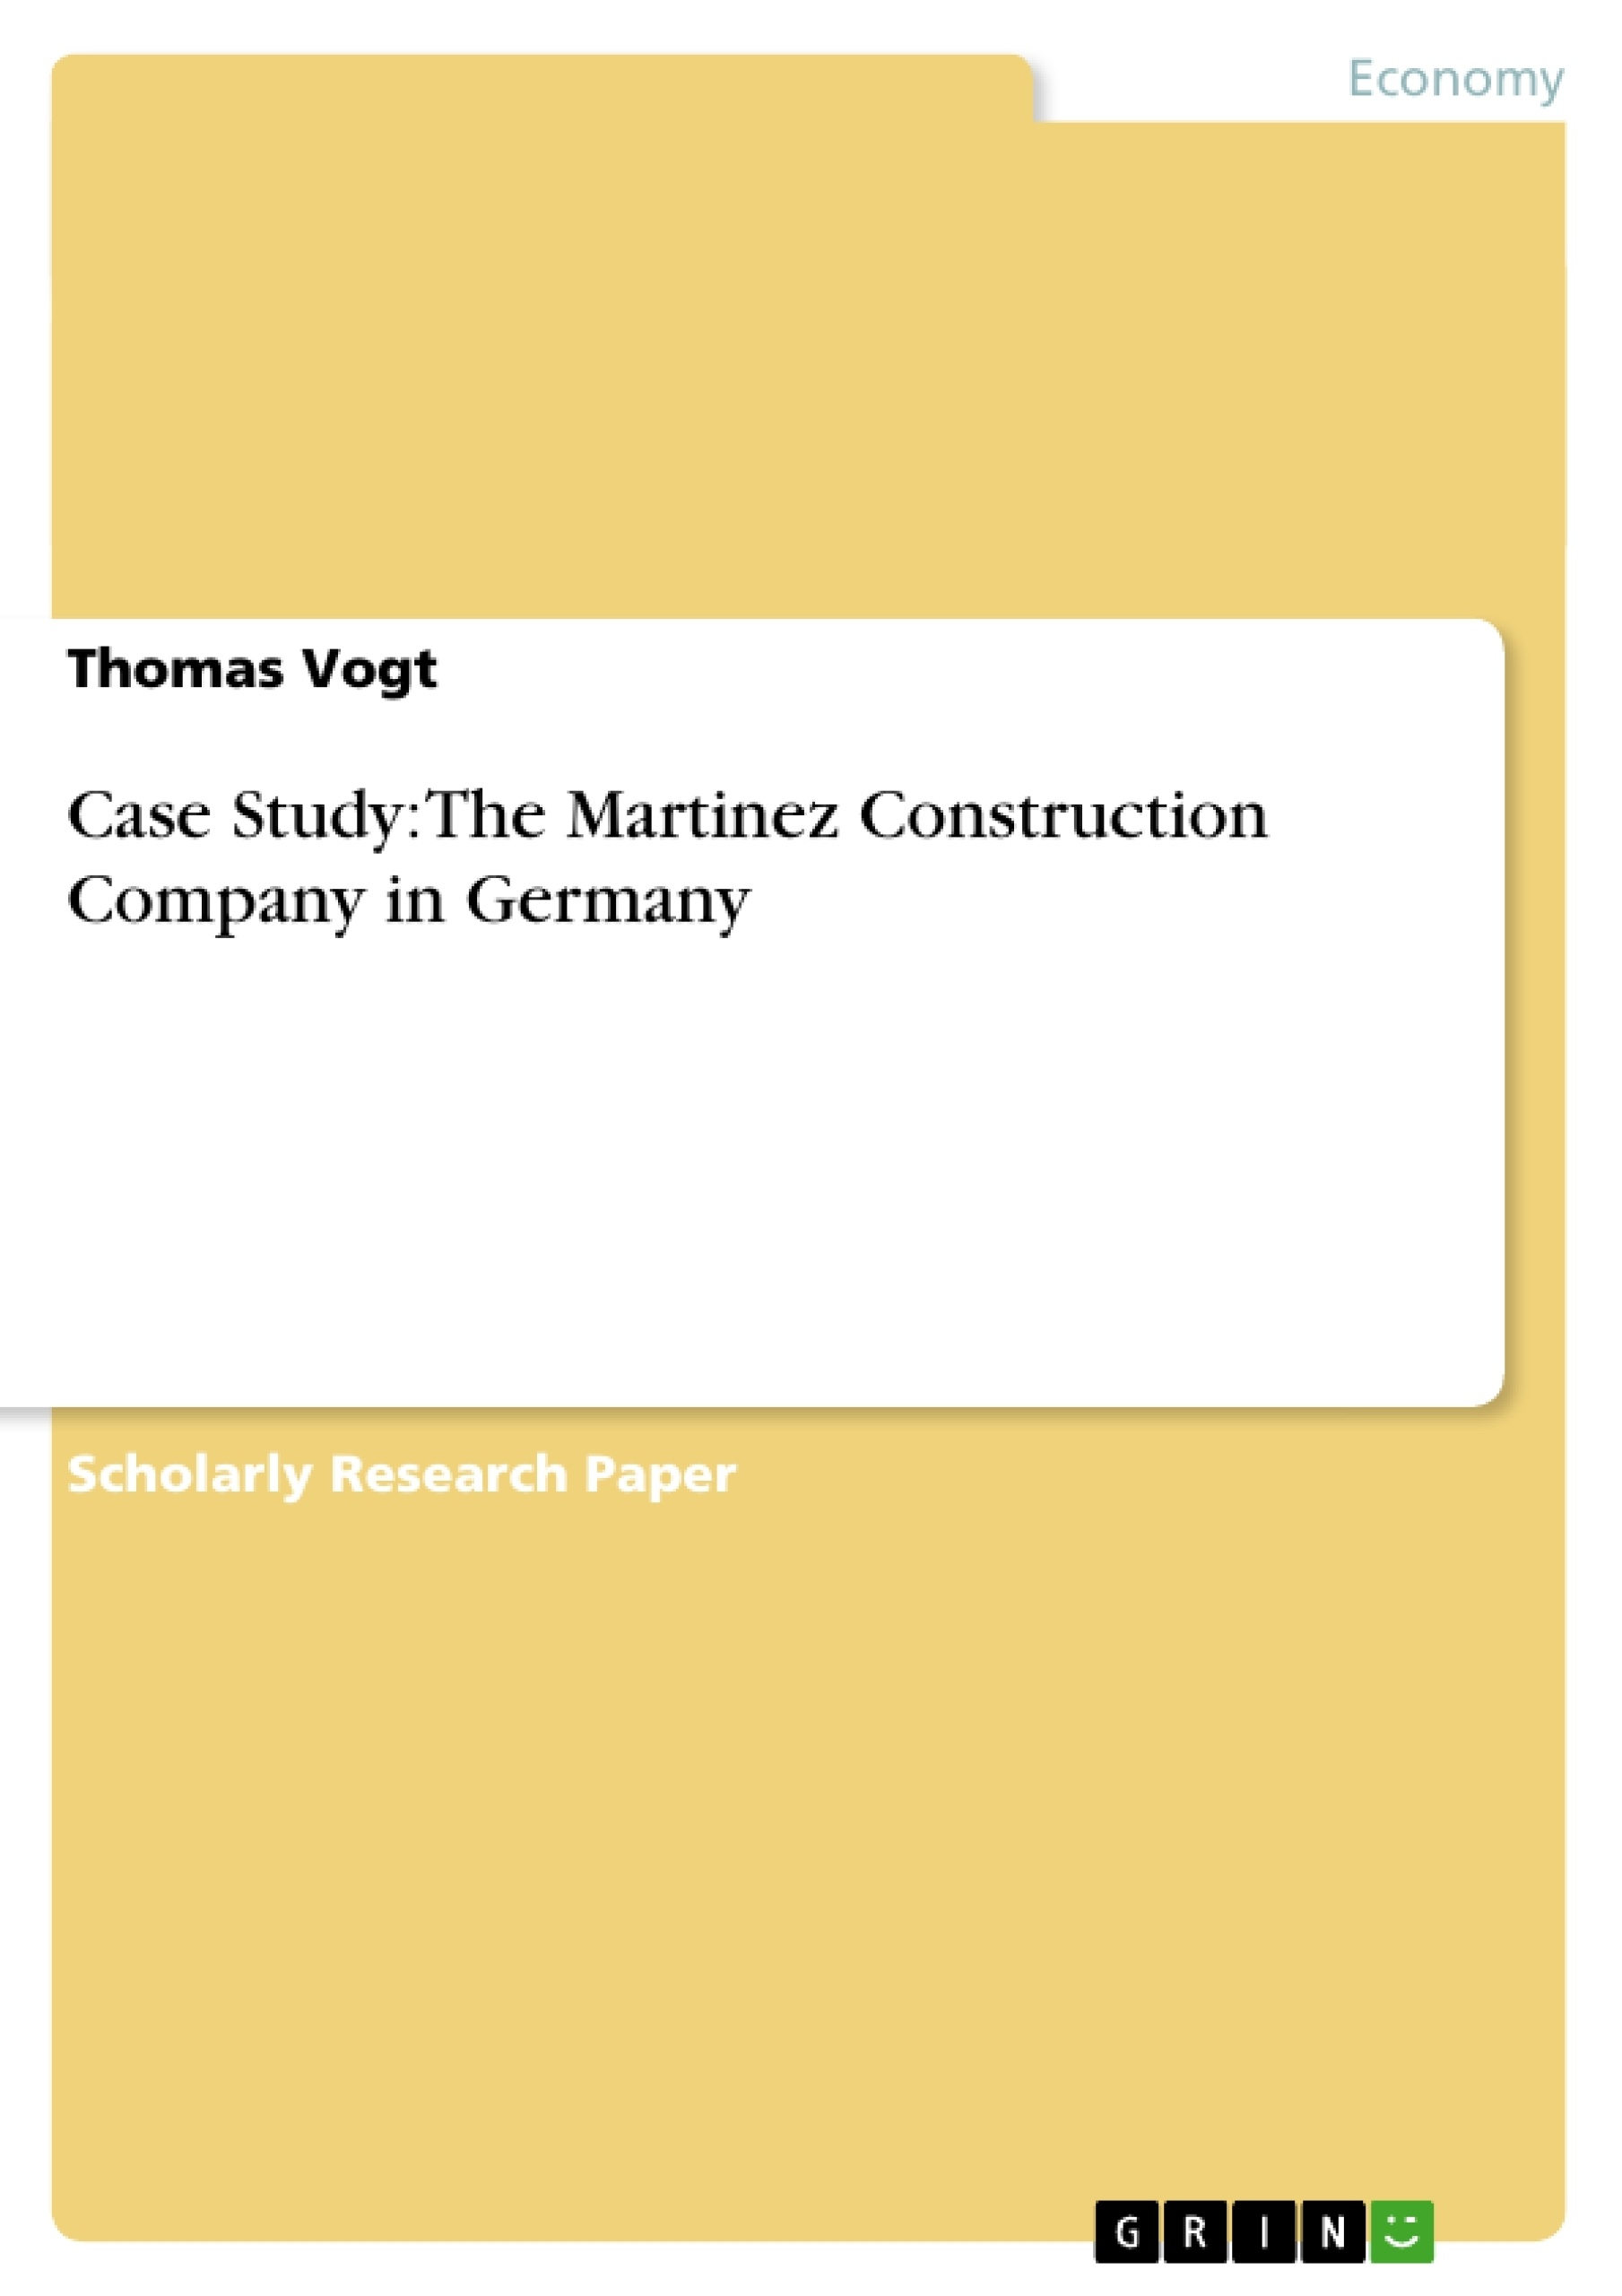 Title: Case Study: The Martinez Construction Company in Germany